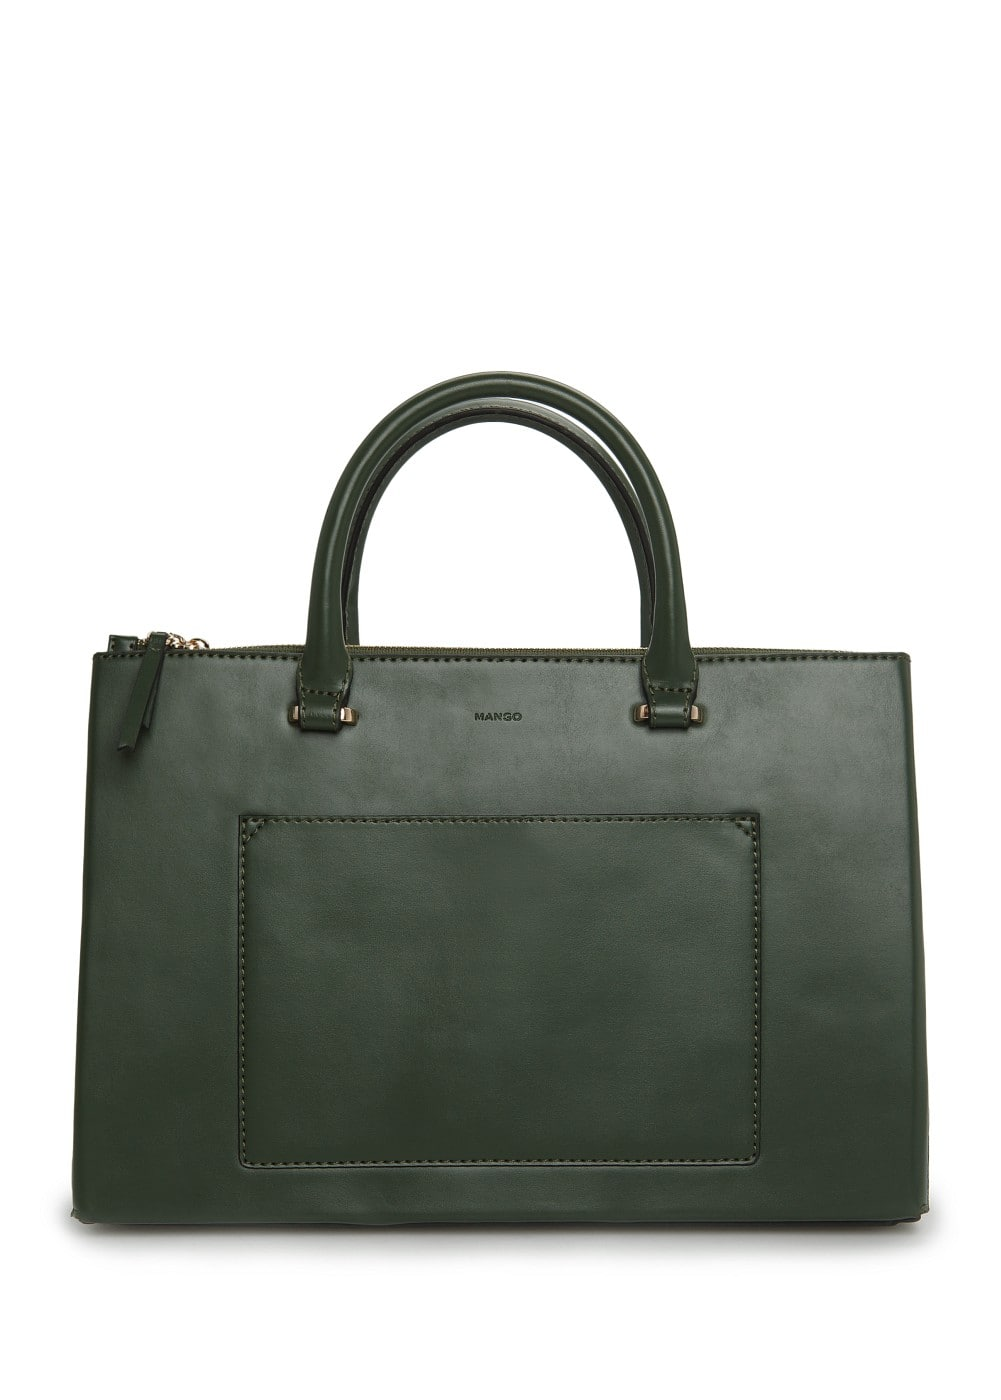 Metallic interior tote bag